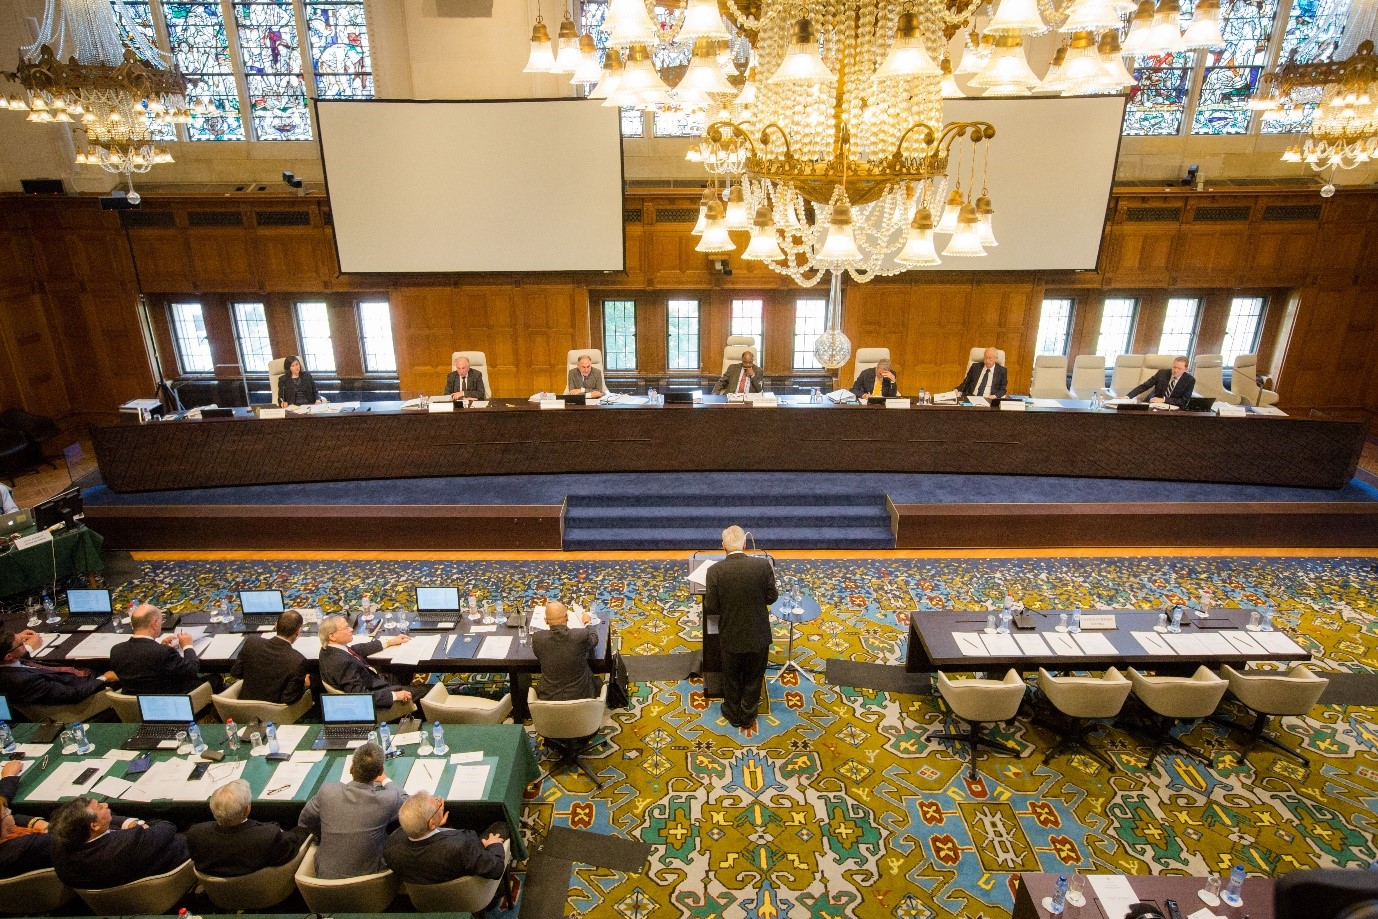 Photograph: Hearing in session, July 2015, Peace Palace, The Hague, Photo Credit:  The Permanent Court of Arbitration